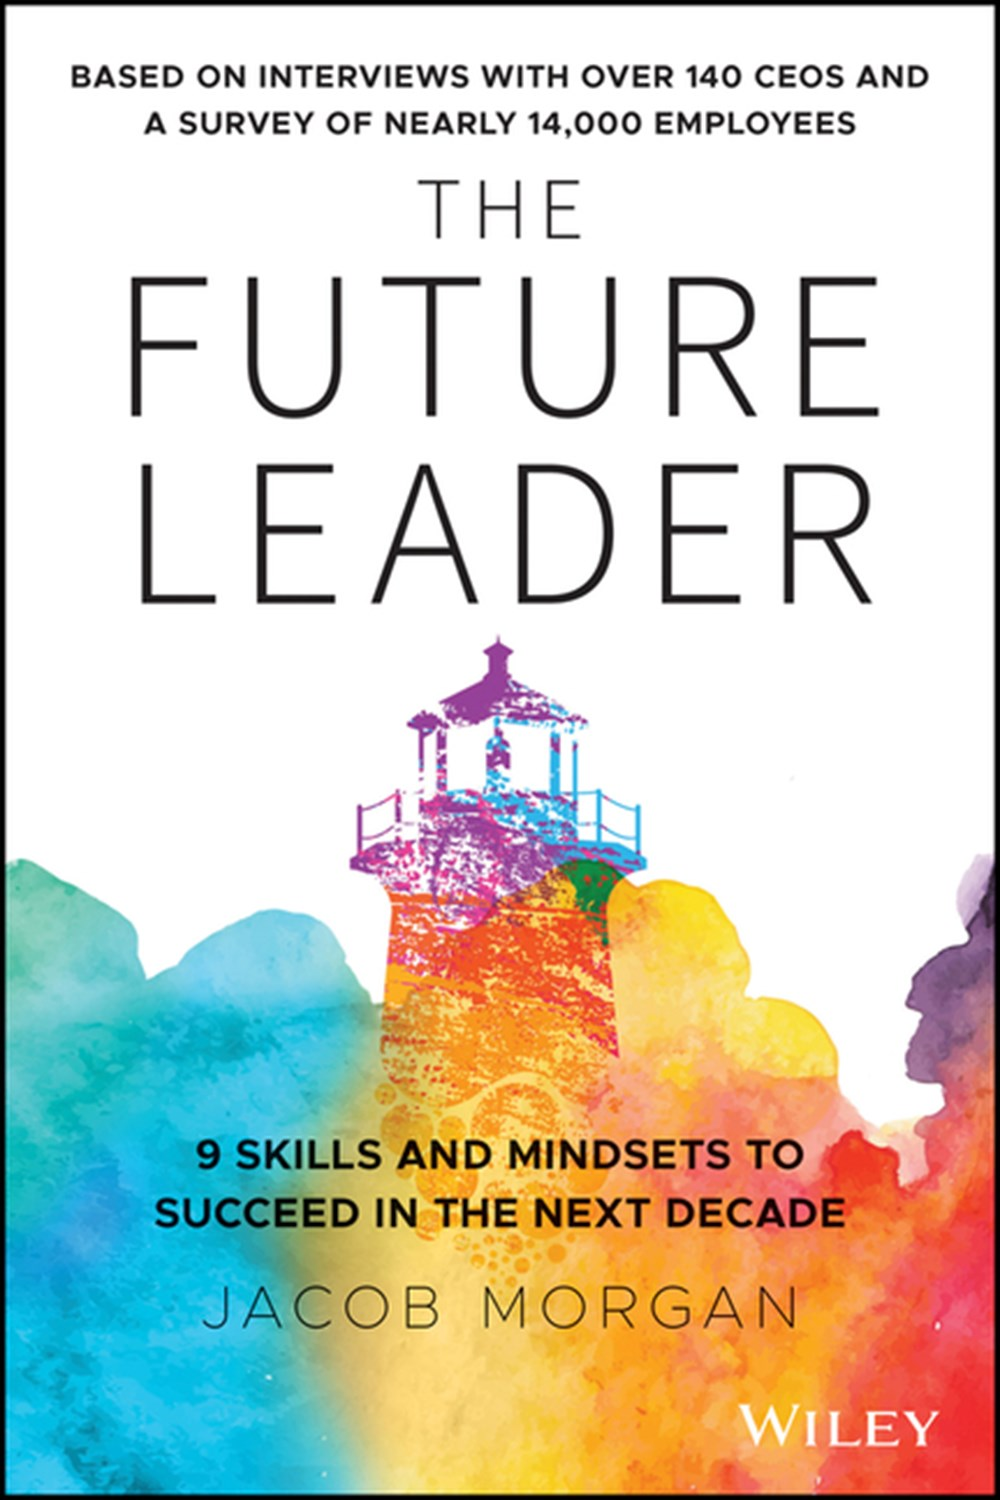 Future Leader 9 Skills and Mindsets to Succeed in the Next Decade